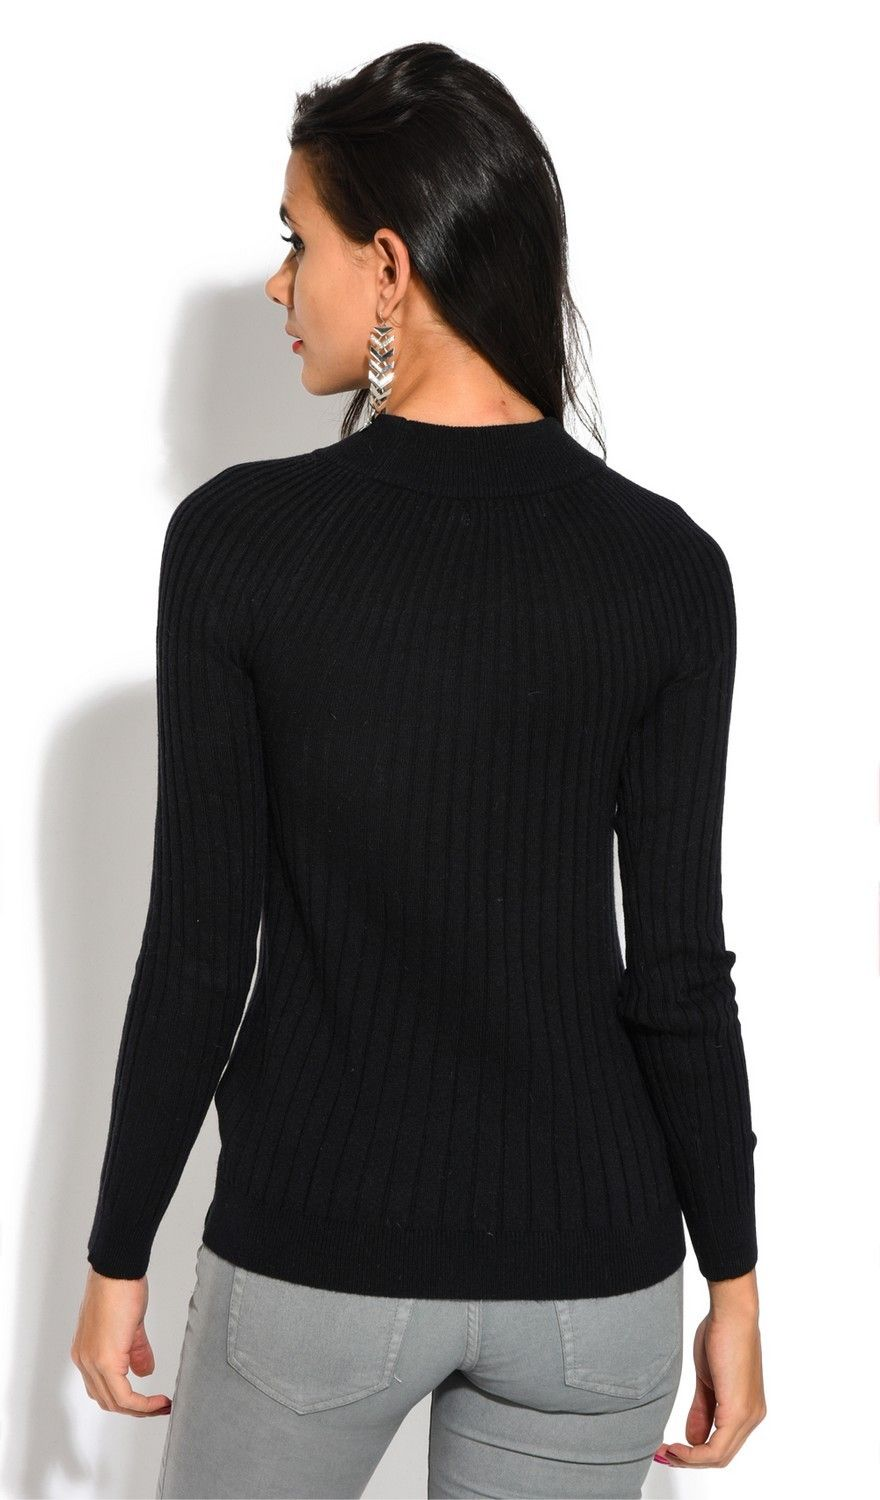 Assuili Funnel Neck Ribbed Sweater in Black